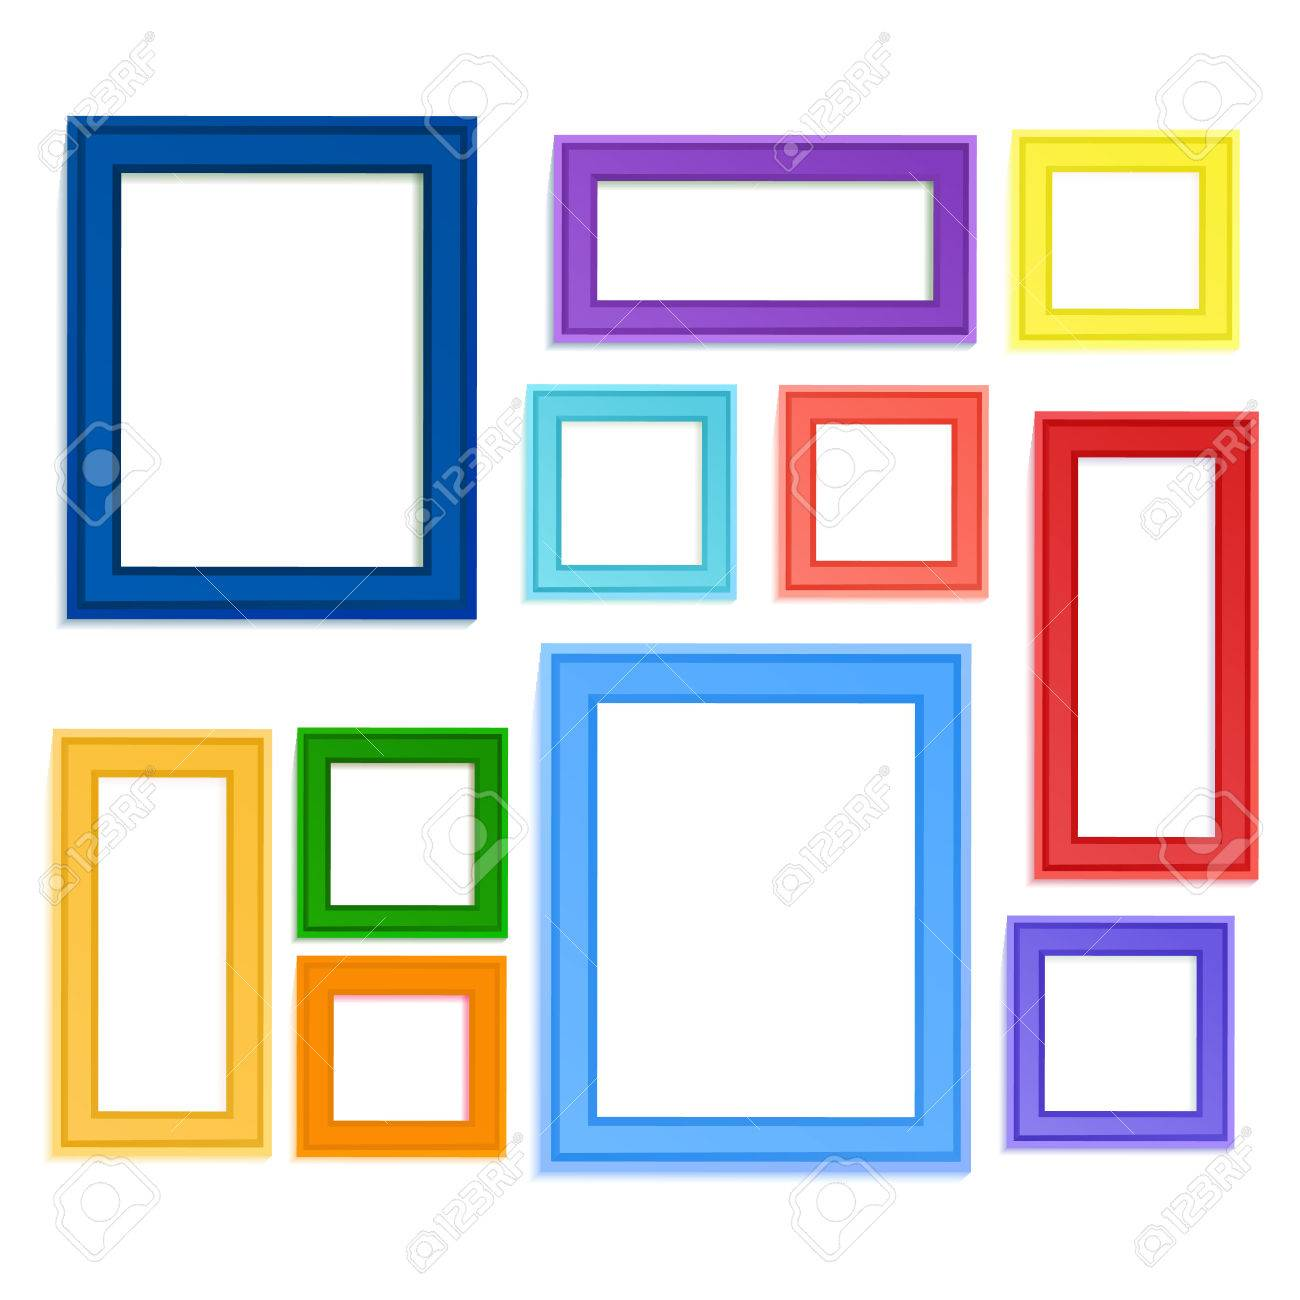 Multi colored photo frames for children picture composed in composition. - 70132719